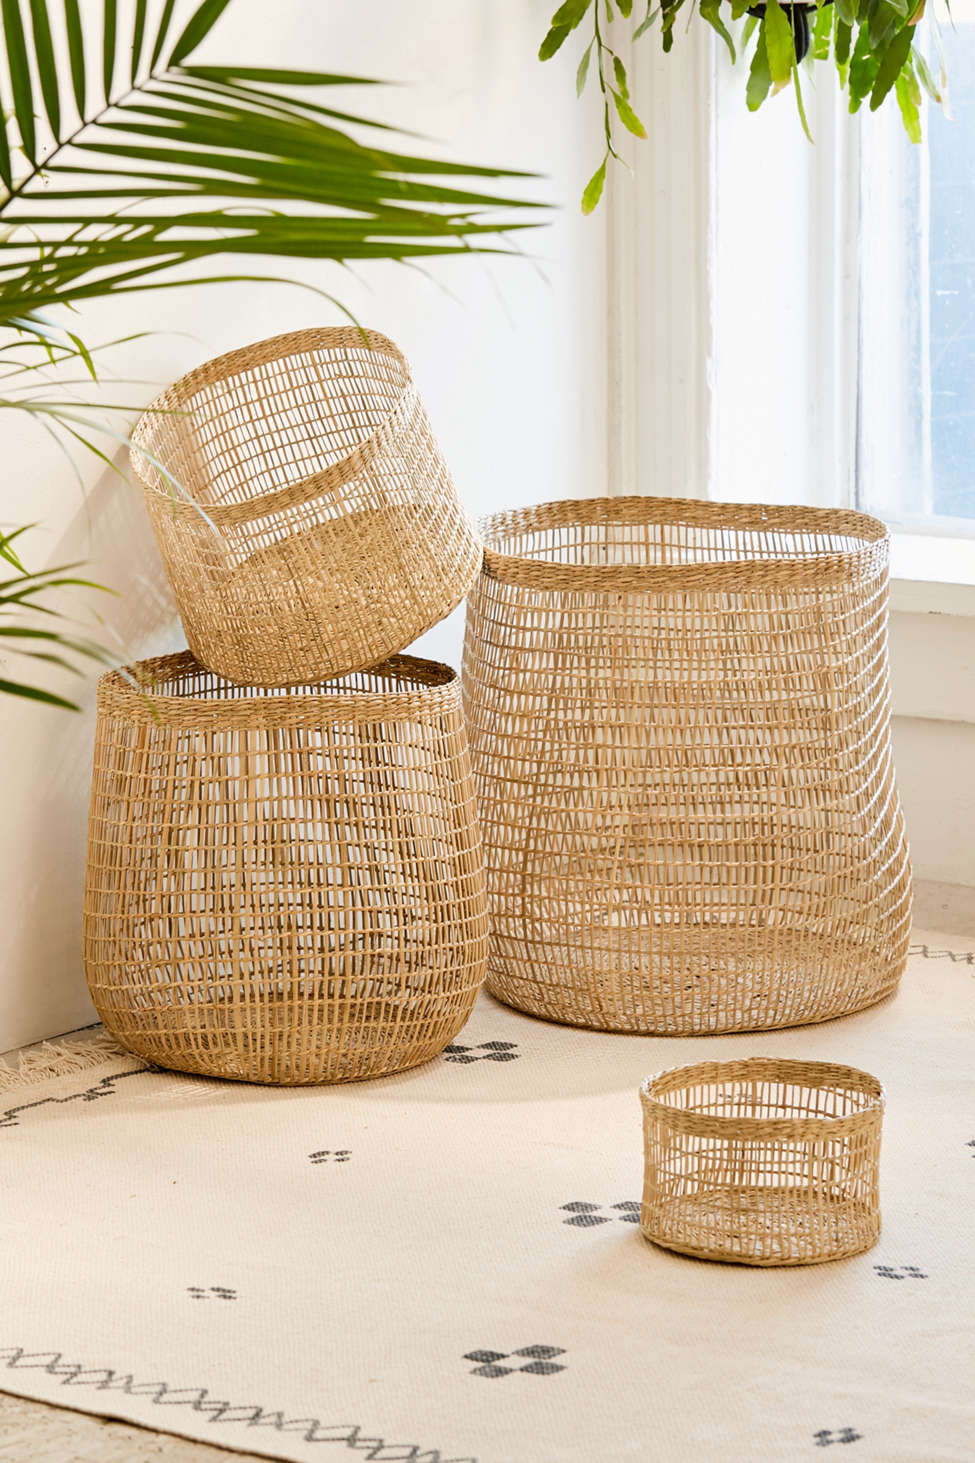 Slide View: 1: Woven Caged Storage Basket